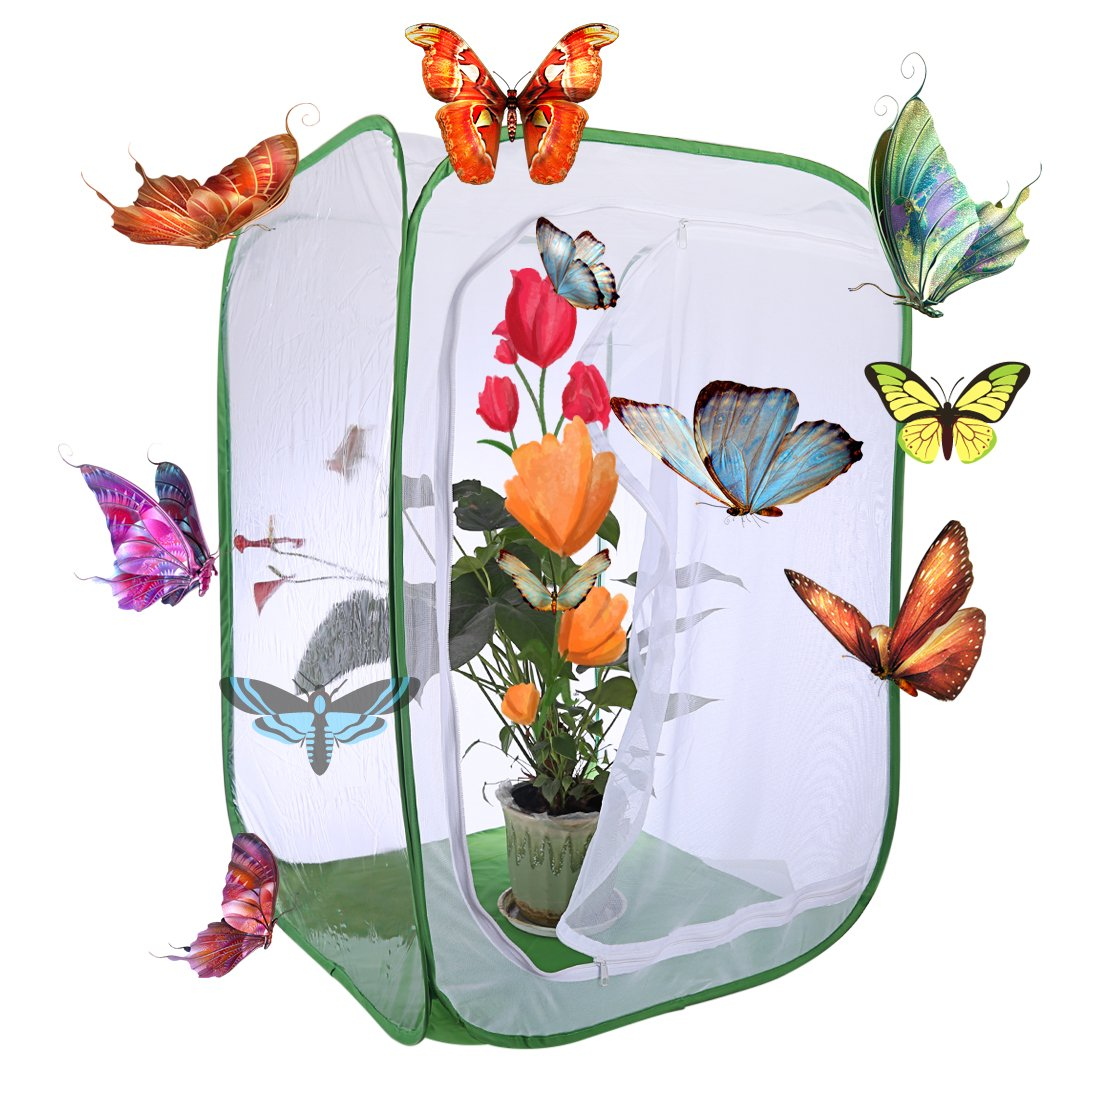 Petforu 35 inches Tall Butterfly House Collapsible Insect and Butterfly Habitat Cage Terrarium Pop-up Open (Large) by Petforu